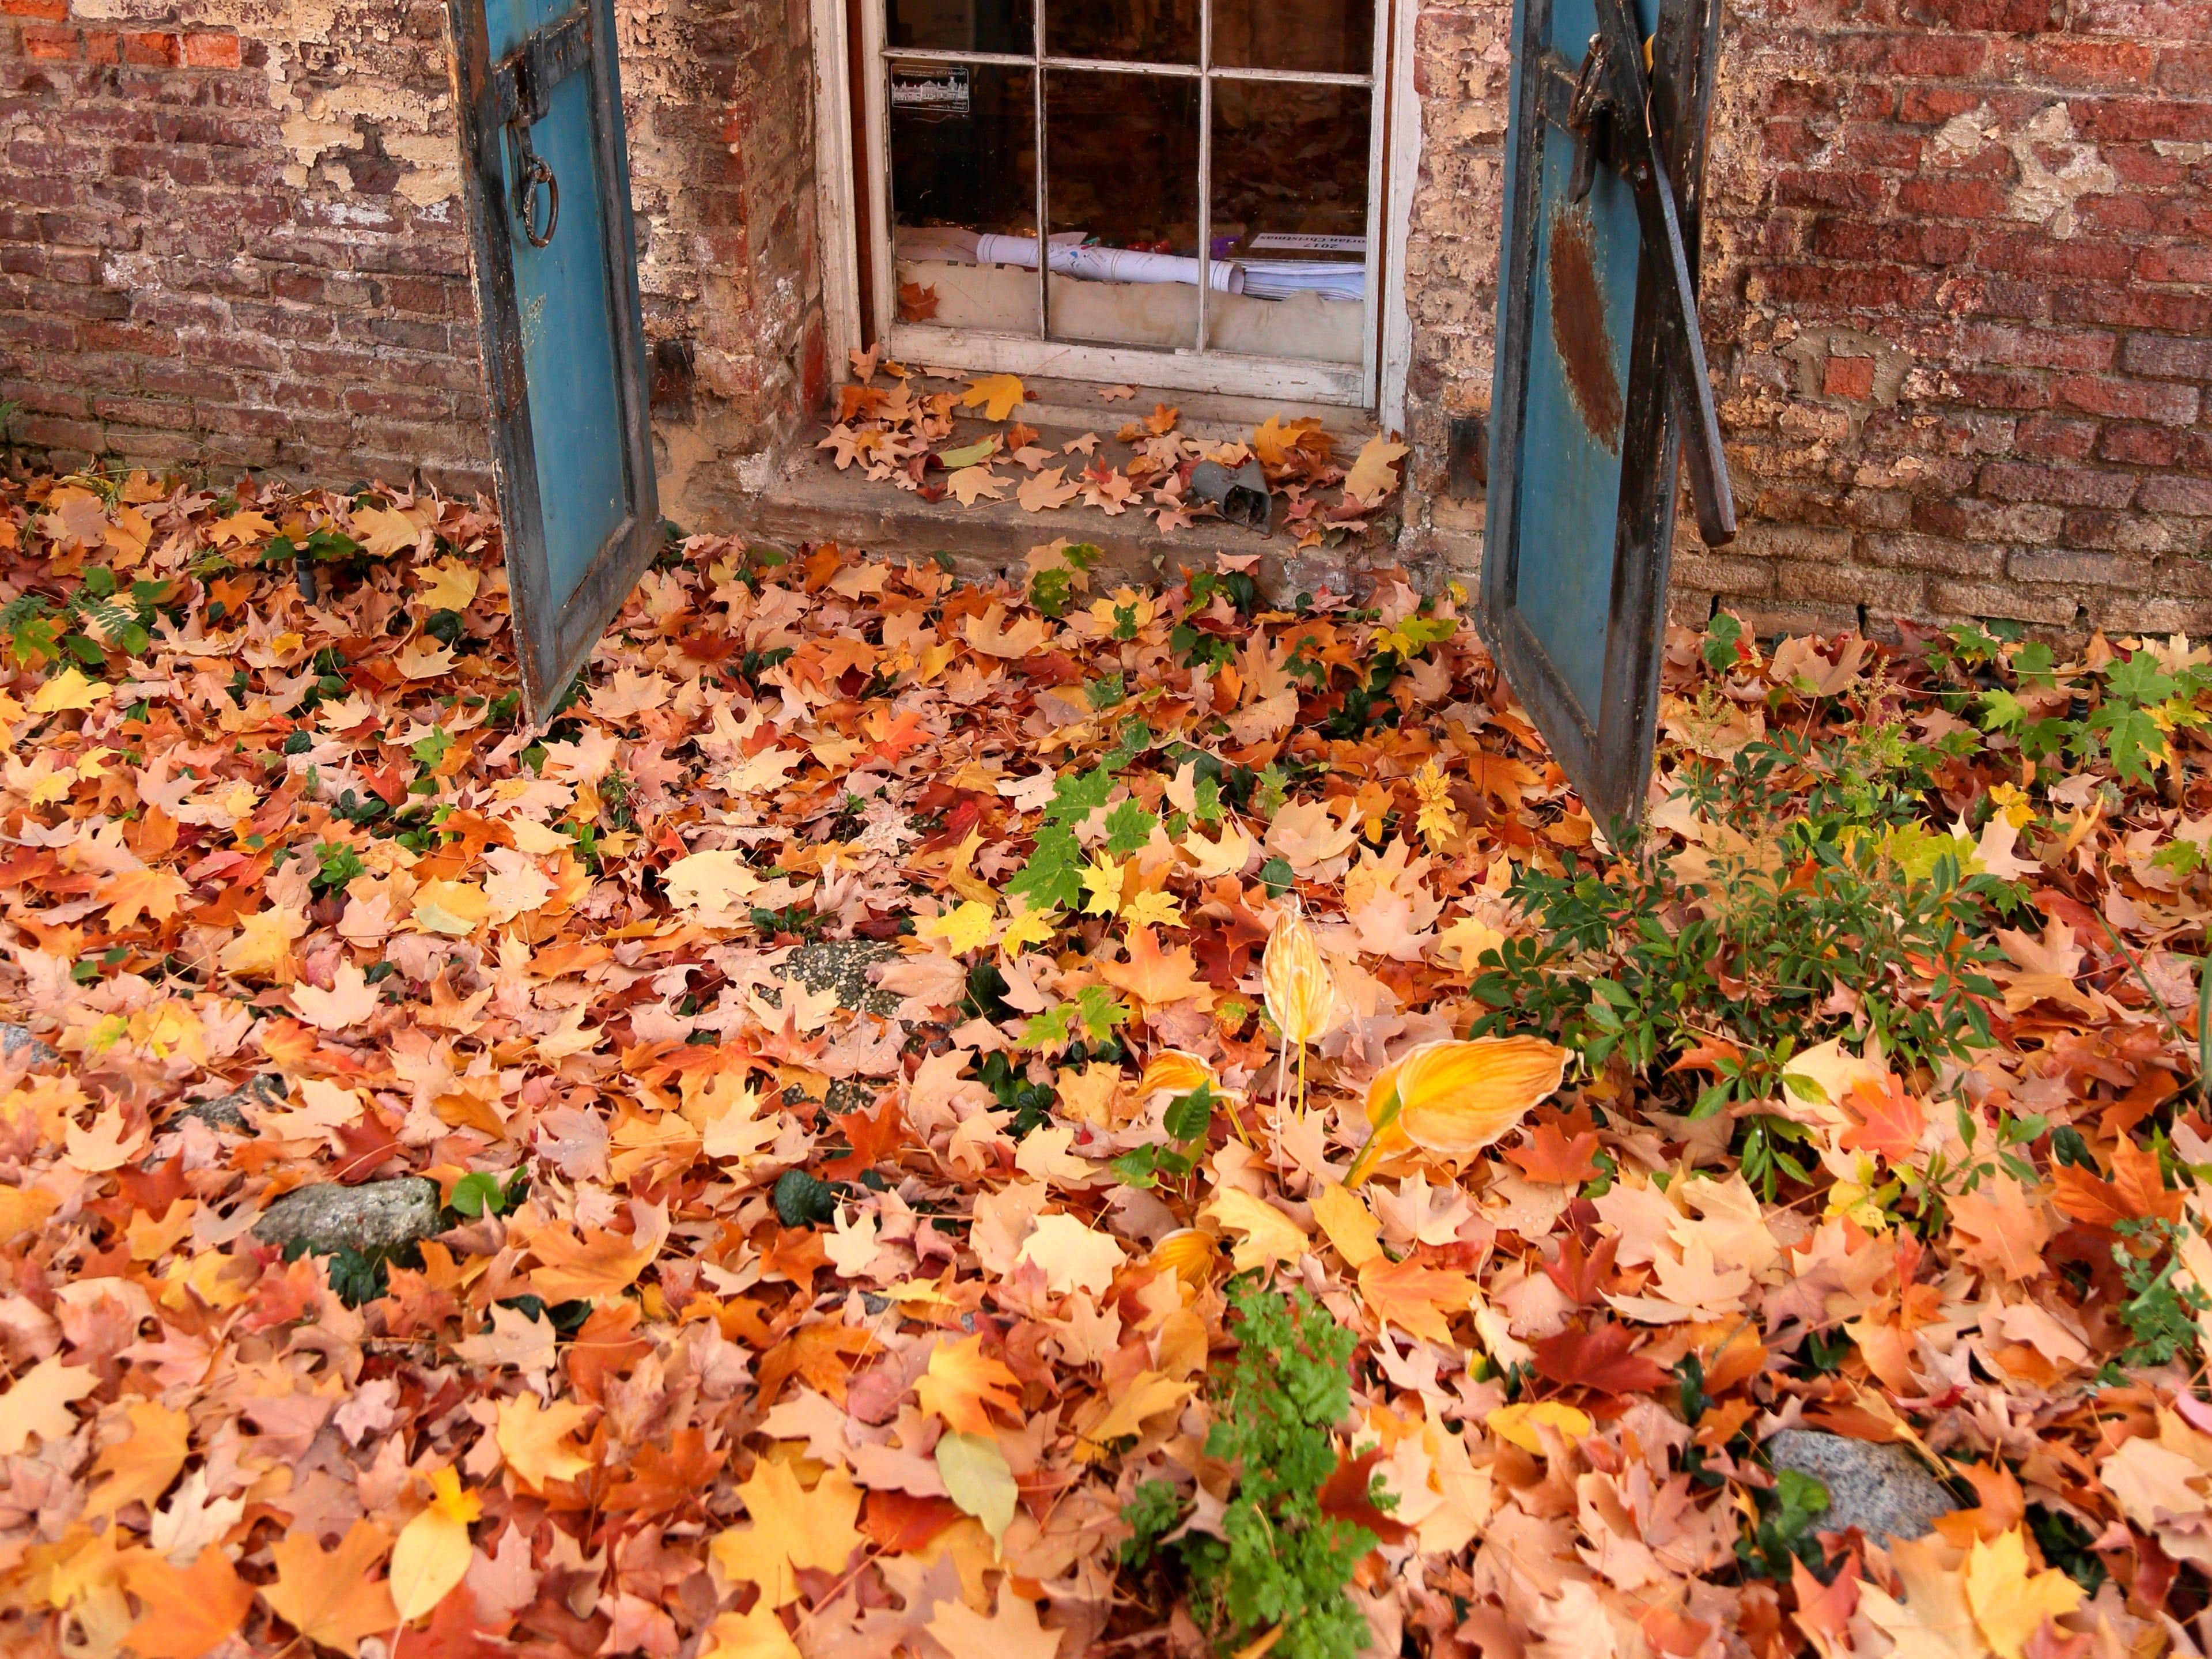 Autumn colored leaves gather near the iron doors of the historic Assay Office Tuesday, Oct. 30, 2018, in downtown Nevada City, Calif.